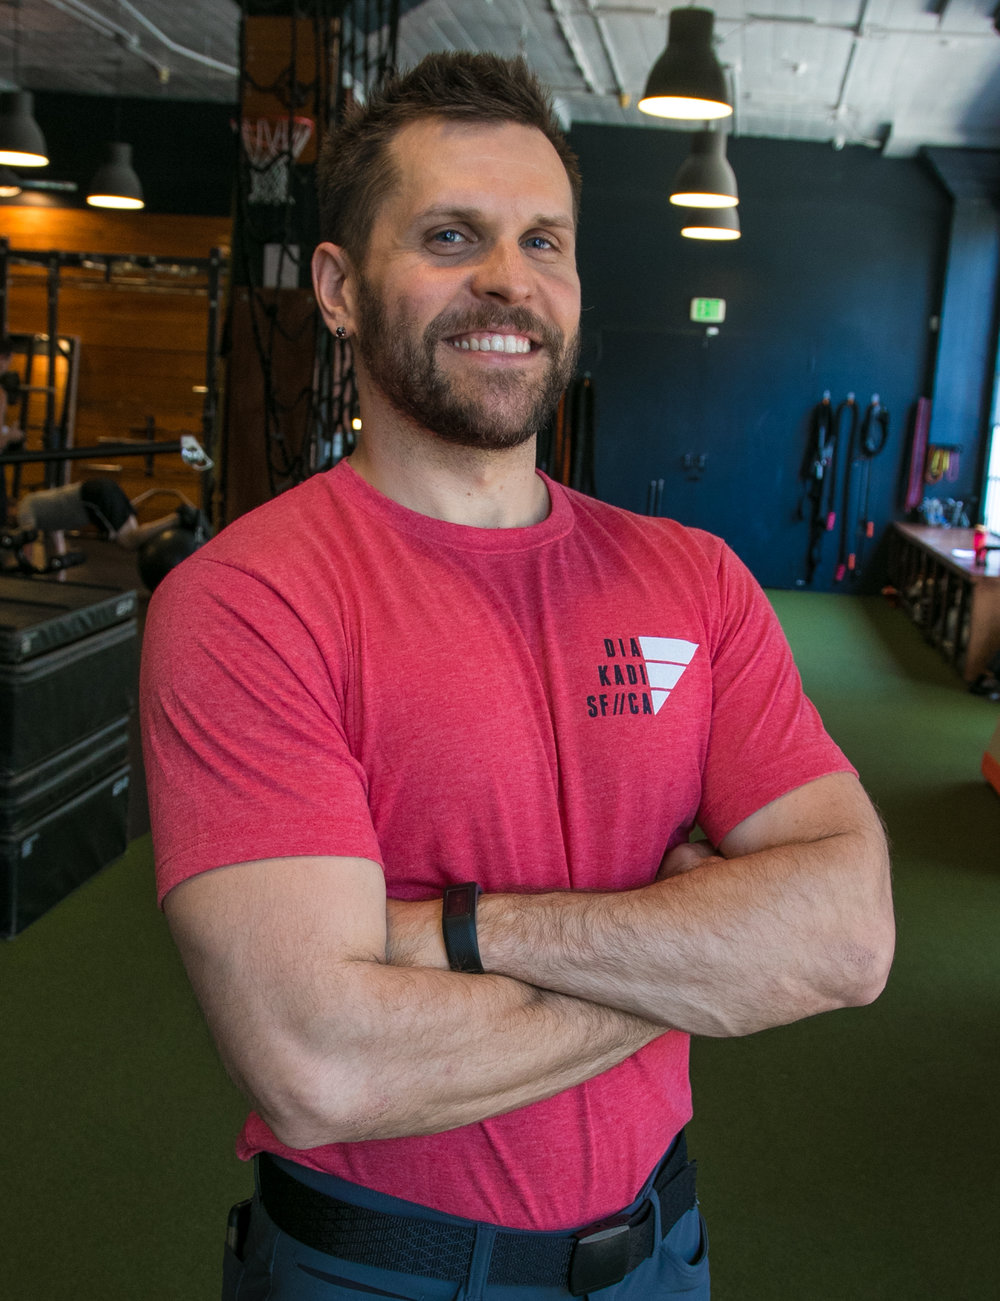 MICHAEL CRAMMOND                     CLICK FOR BIO    Body Composition, Hypertrophy & Fat Loss Programs  Clinical Massage Therapist & A.R.T. Provider  Postural Assessment & Corrective Exercise Prescription  Post-Rehabilitation & Injury Prevention  Neurological Testing & Treatment via P-DTR